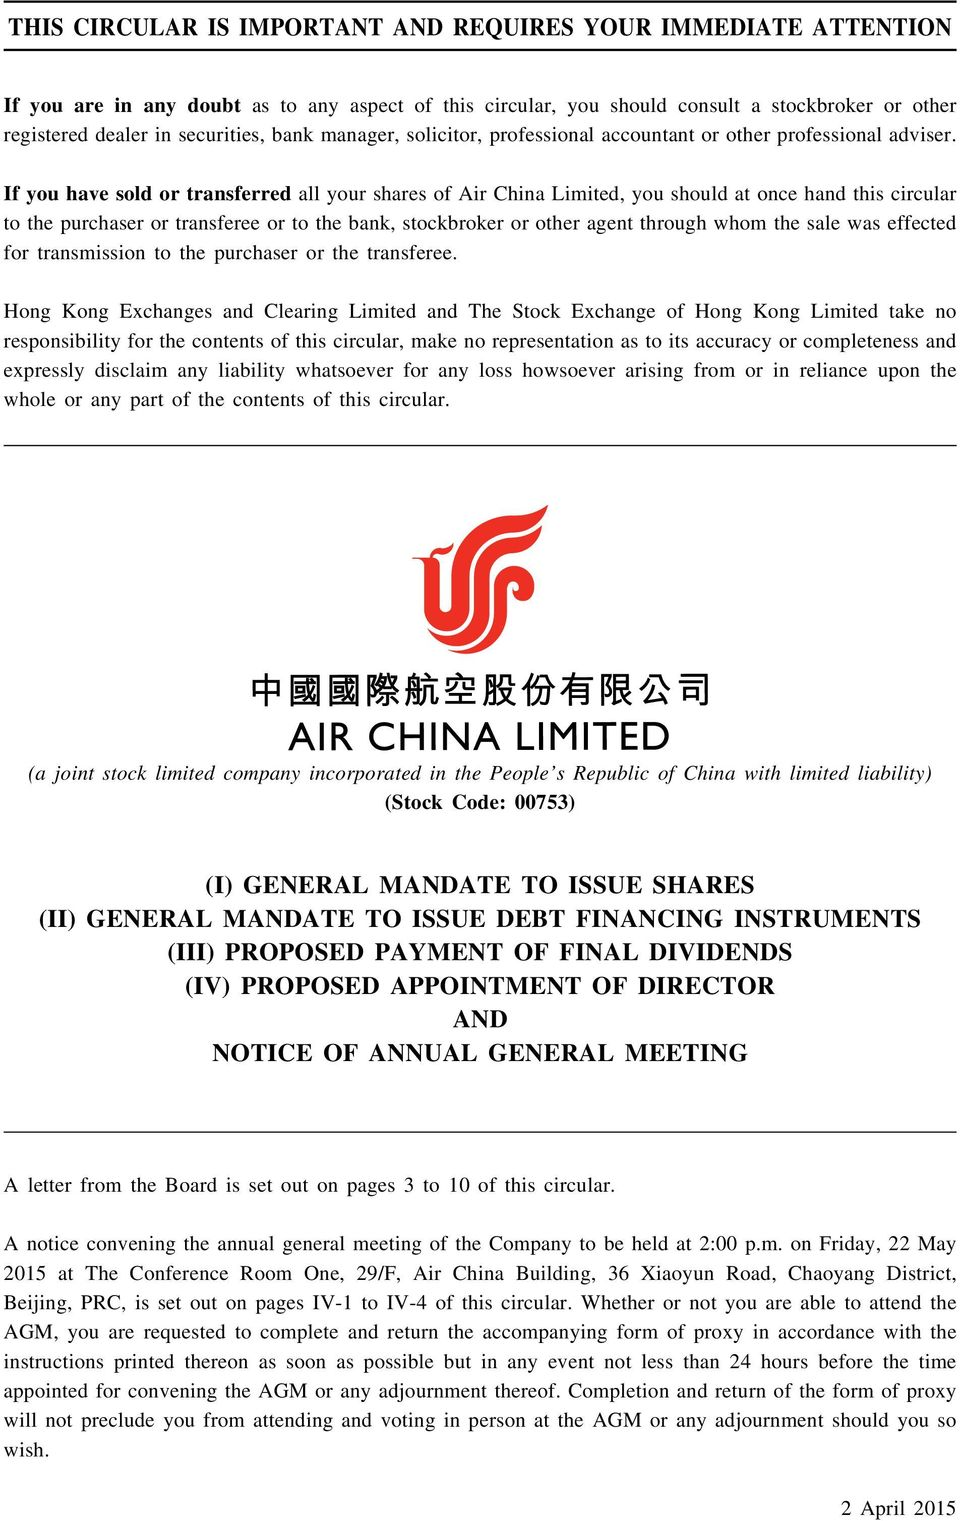 If you have sold or transferred all your shares of Air China Limited, you should at once hand this circular to the purchaser or transferee or to the bank, stockbroker or other agent through whom the